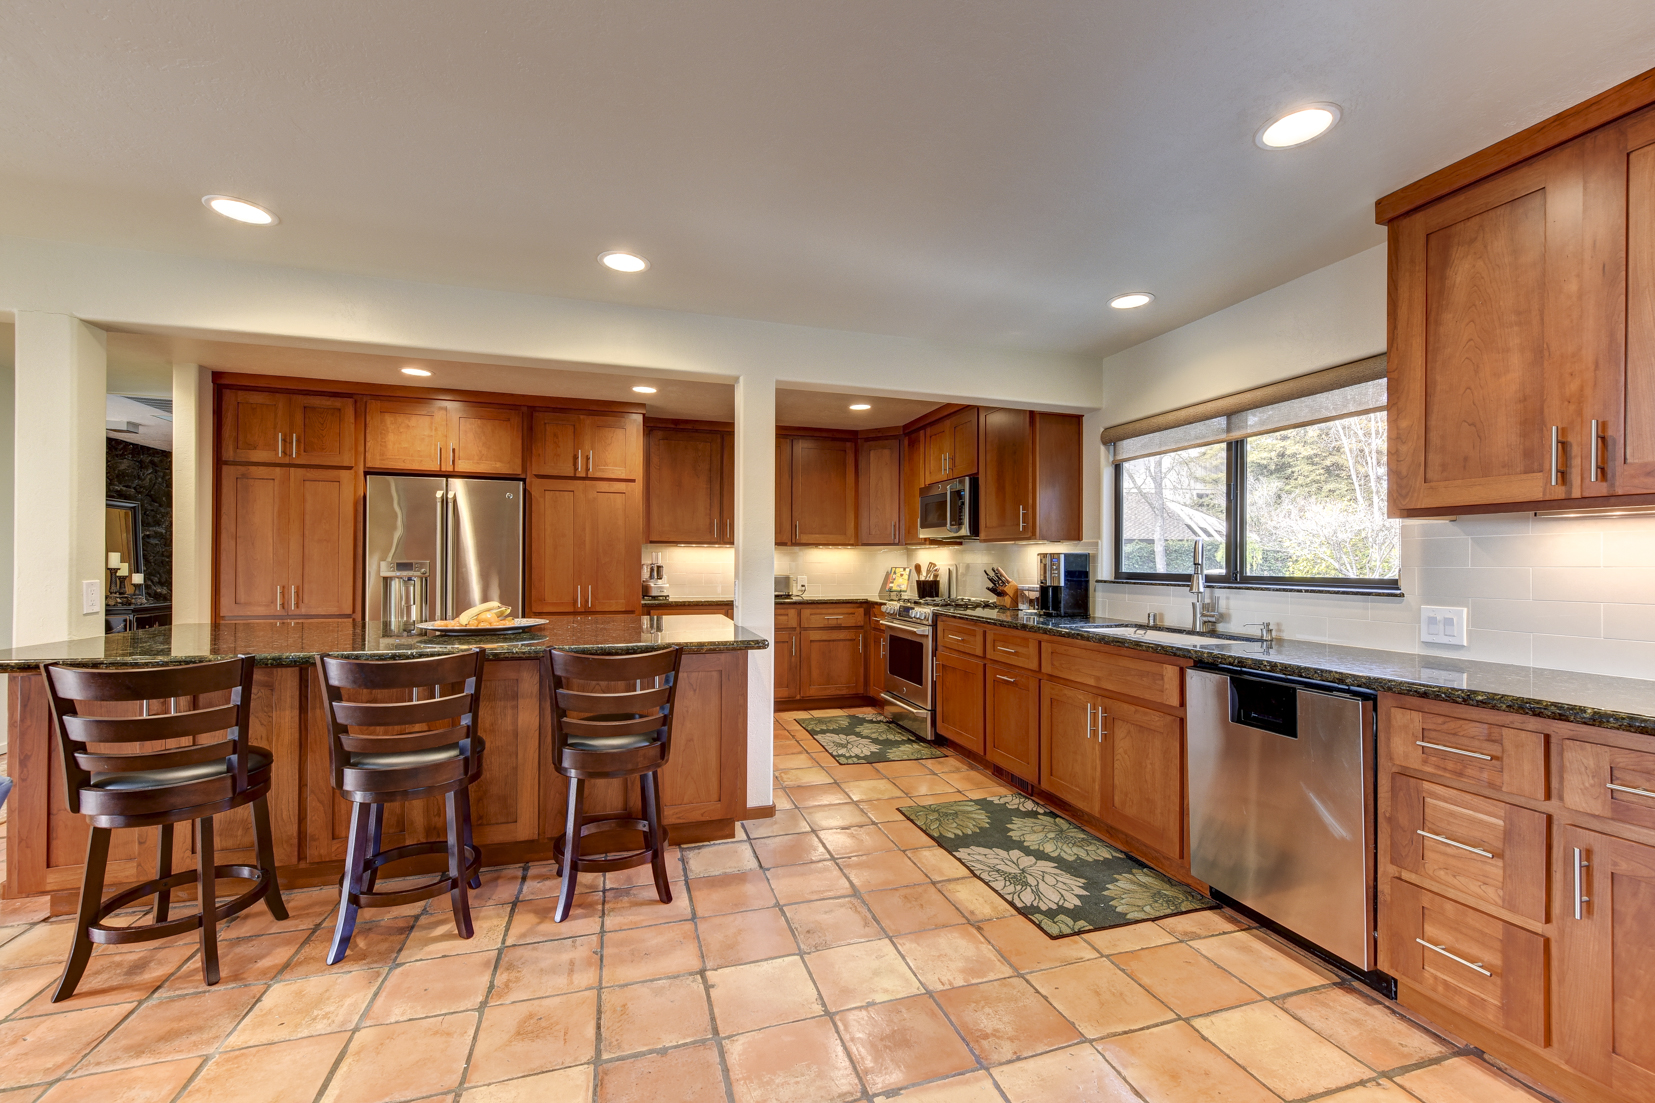 Updated cherry cabinet kitchen with stainless steel appliances